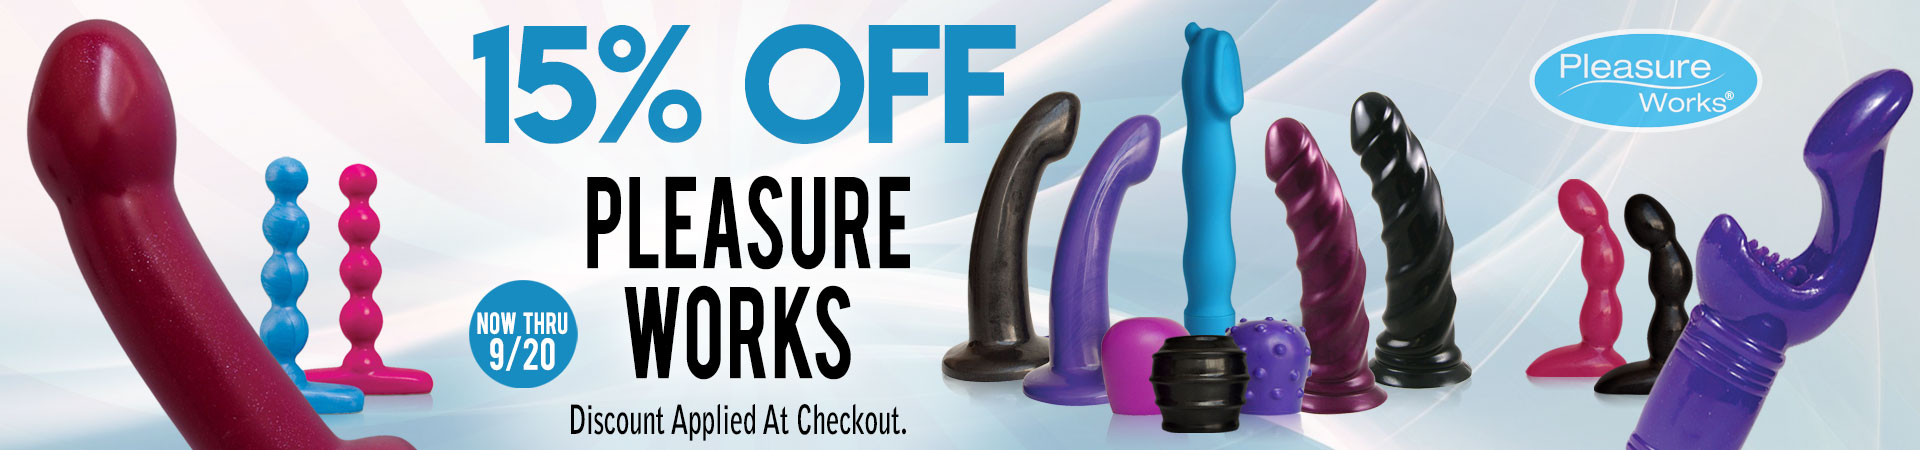 15% Off Pleasure Works - Now Thru 9/20 - Discount Applied At Checkout